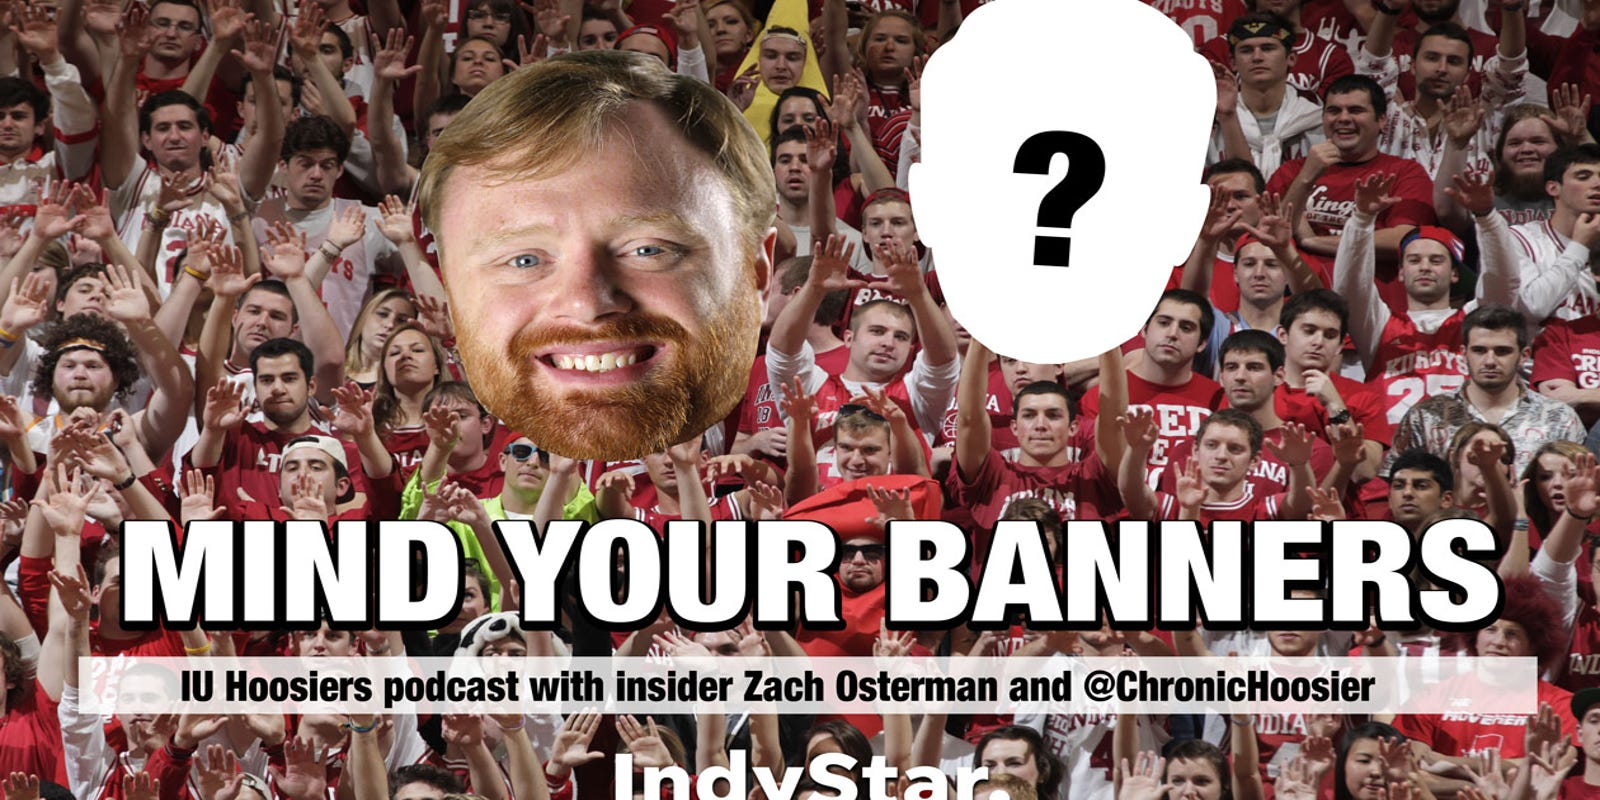 'Mind Your Banners' podcast: What IU basketball's UConn win showed fans